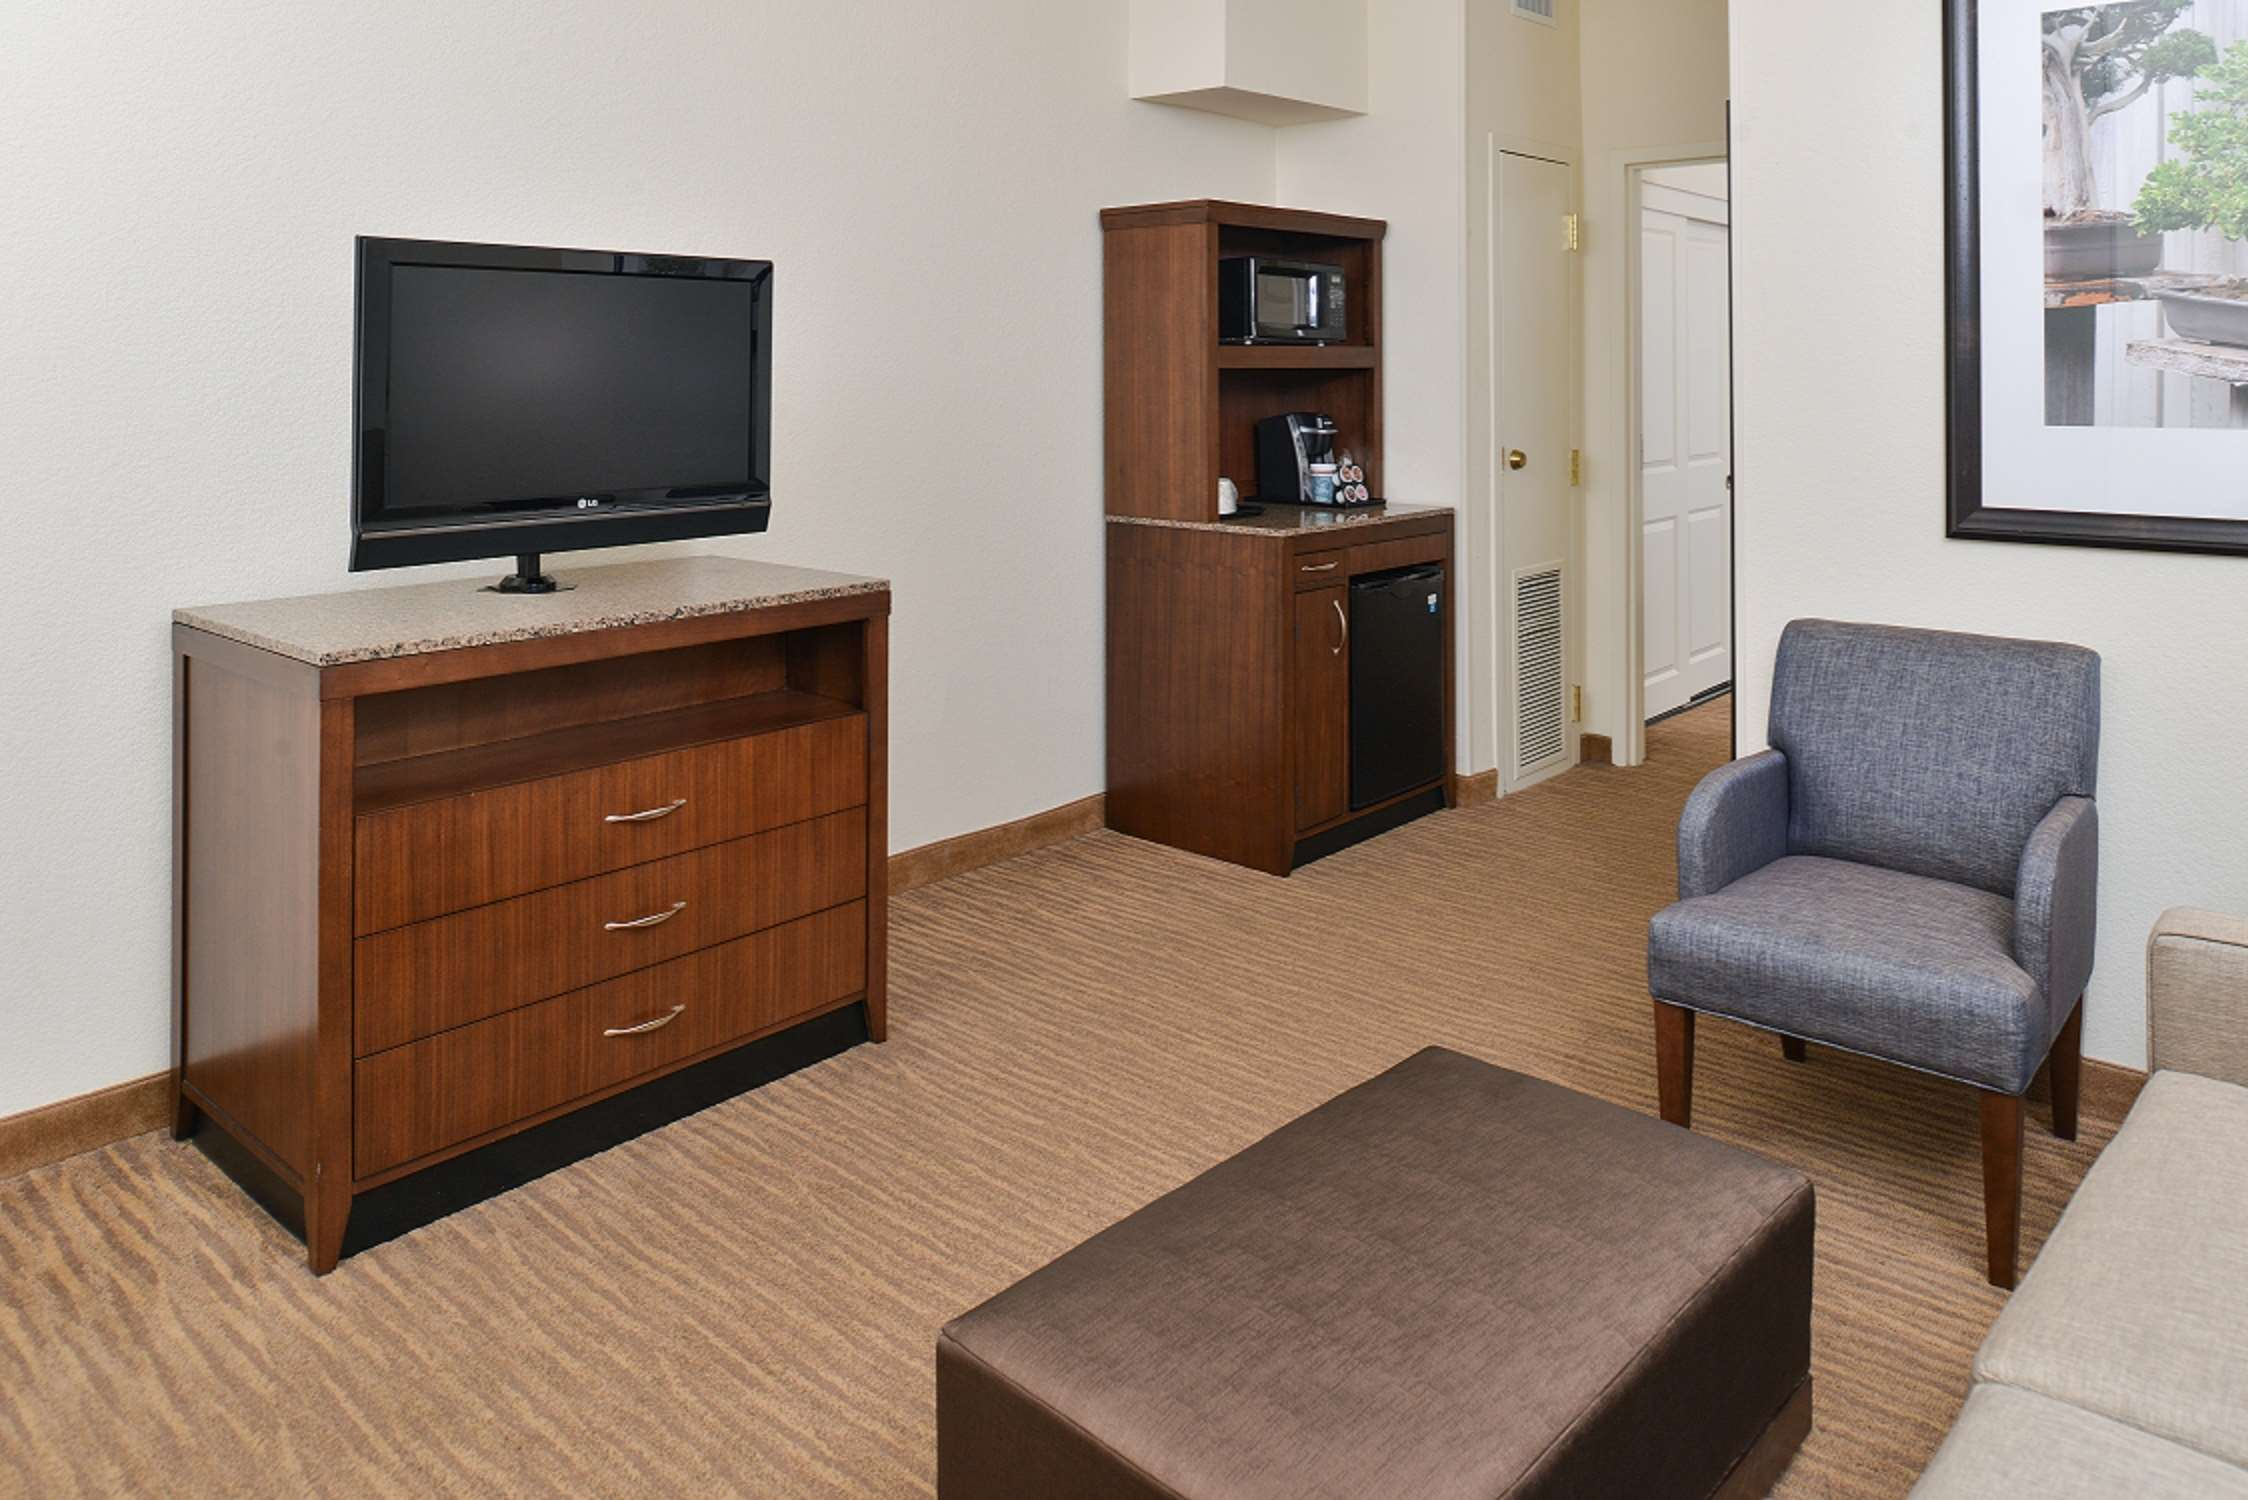 Hilton Garden Inn Dallas/Addison image 30